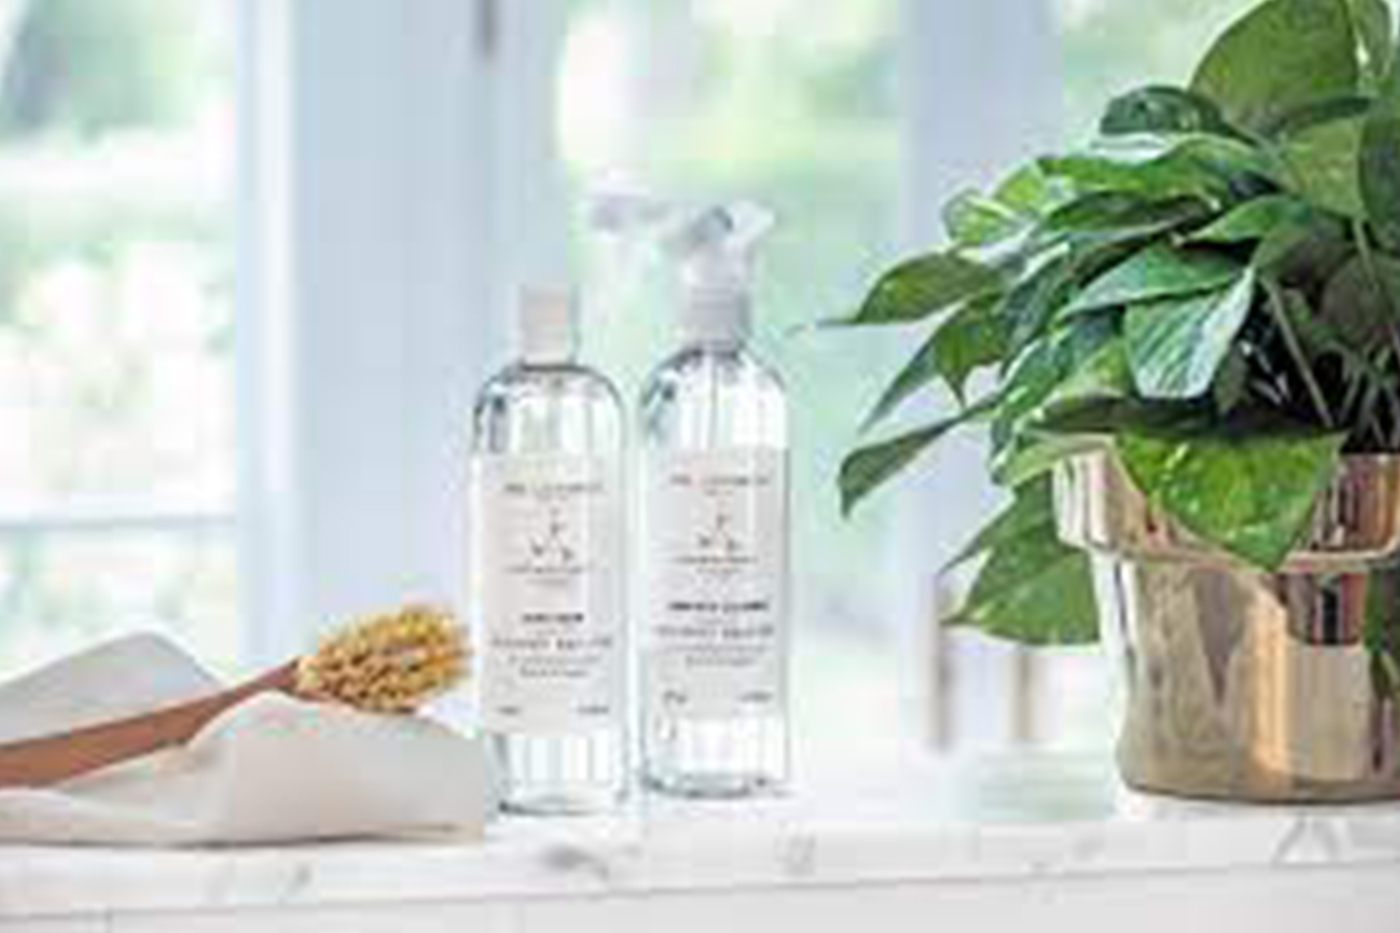 Aromatherapy Associates partners with The Laundress to launch laundry and cleaning products